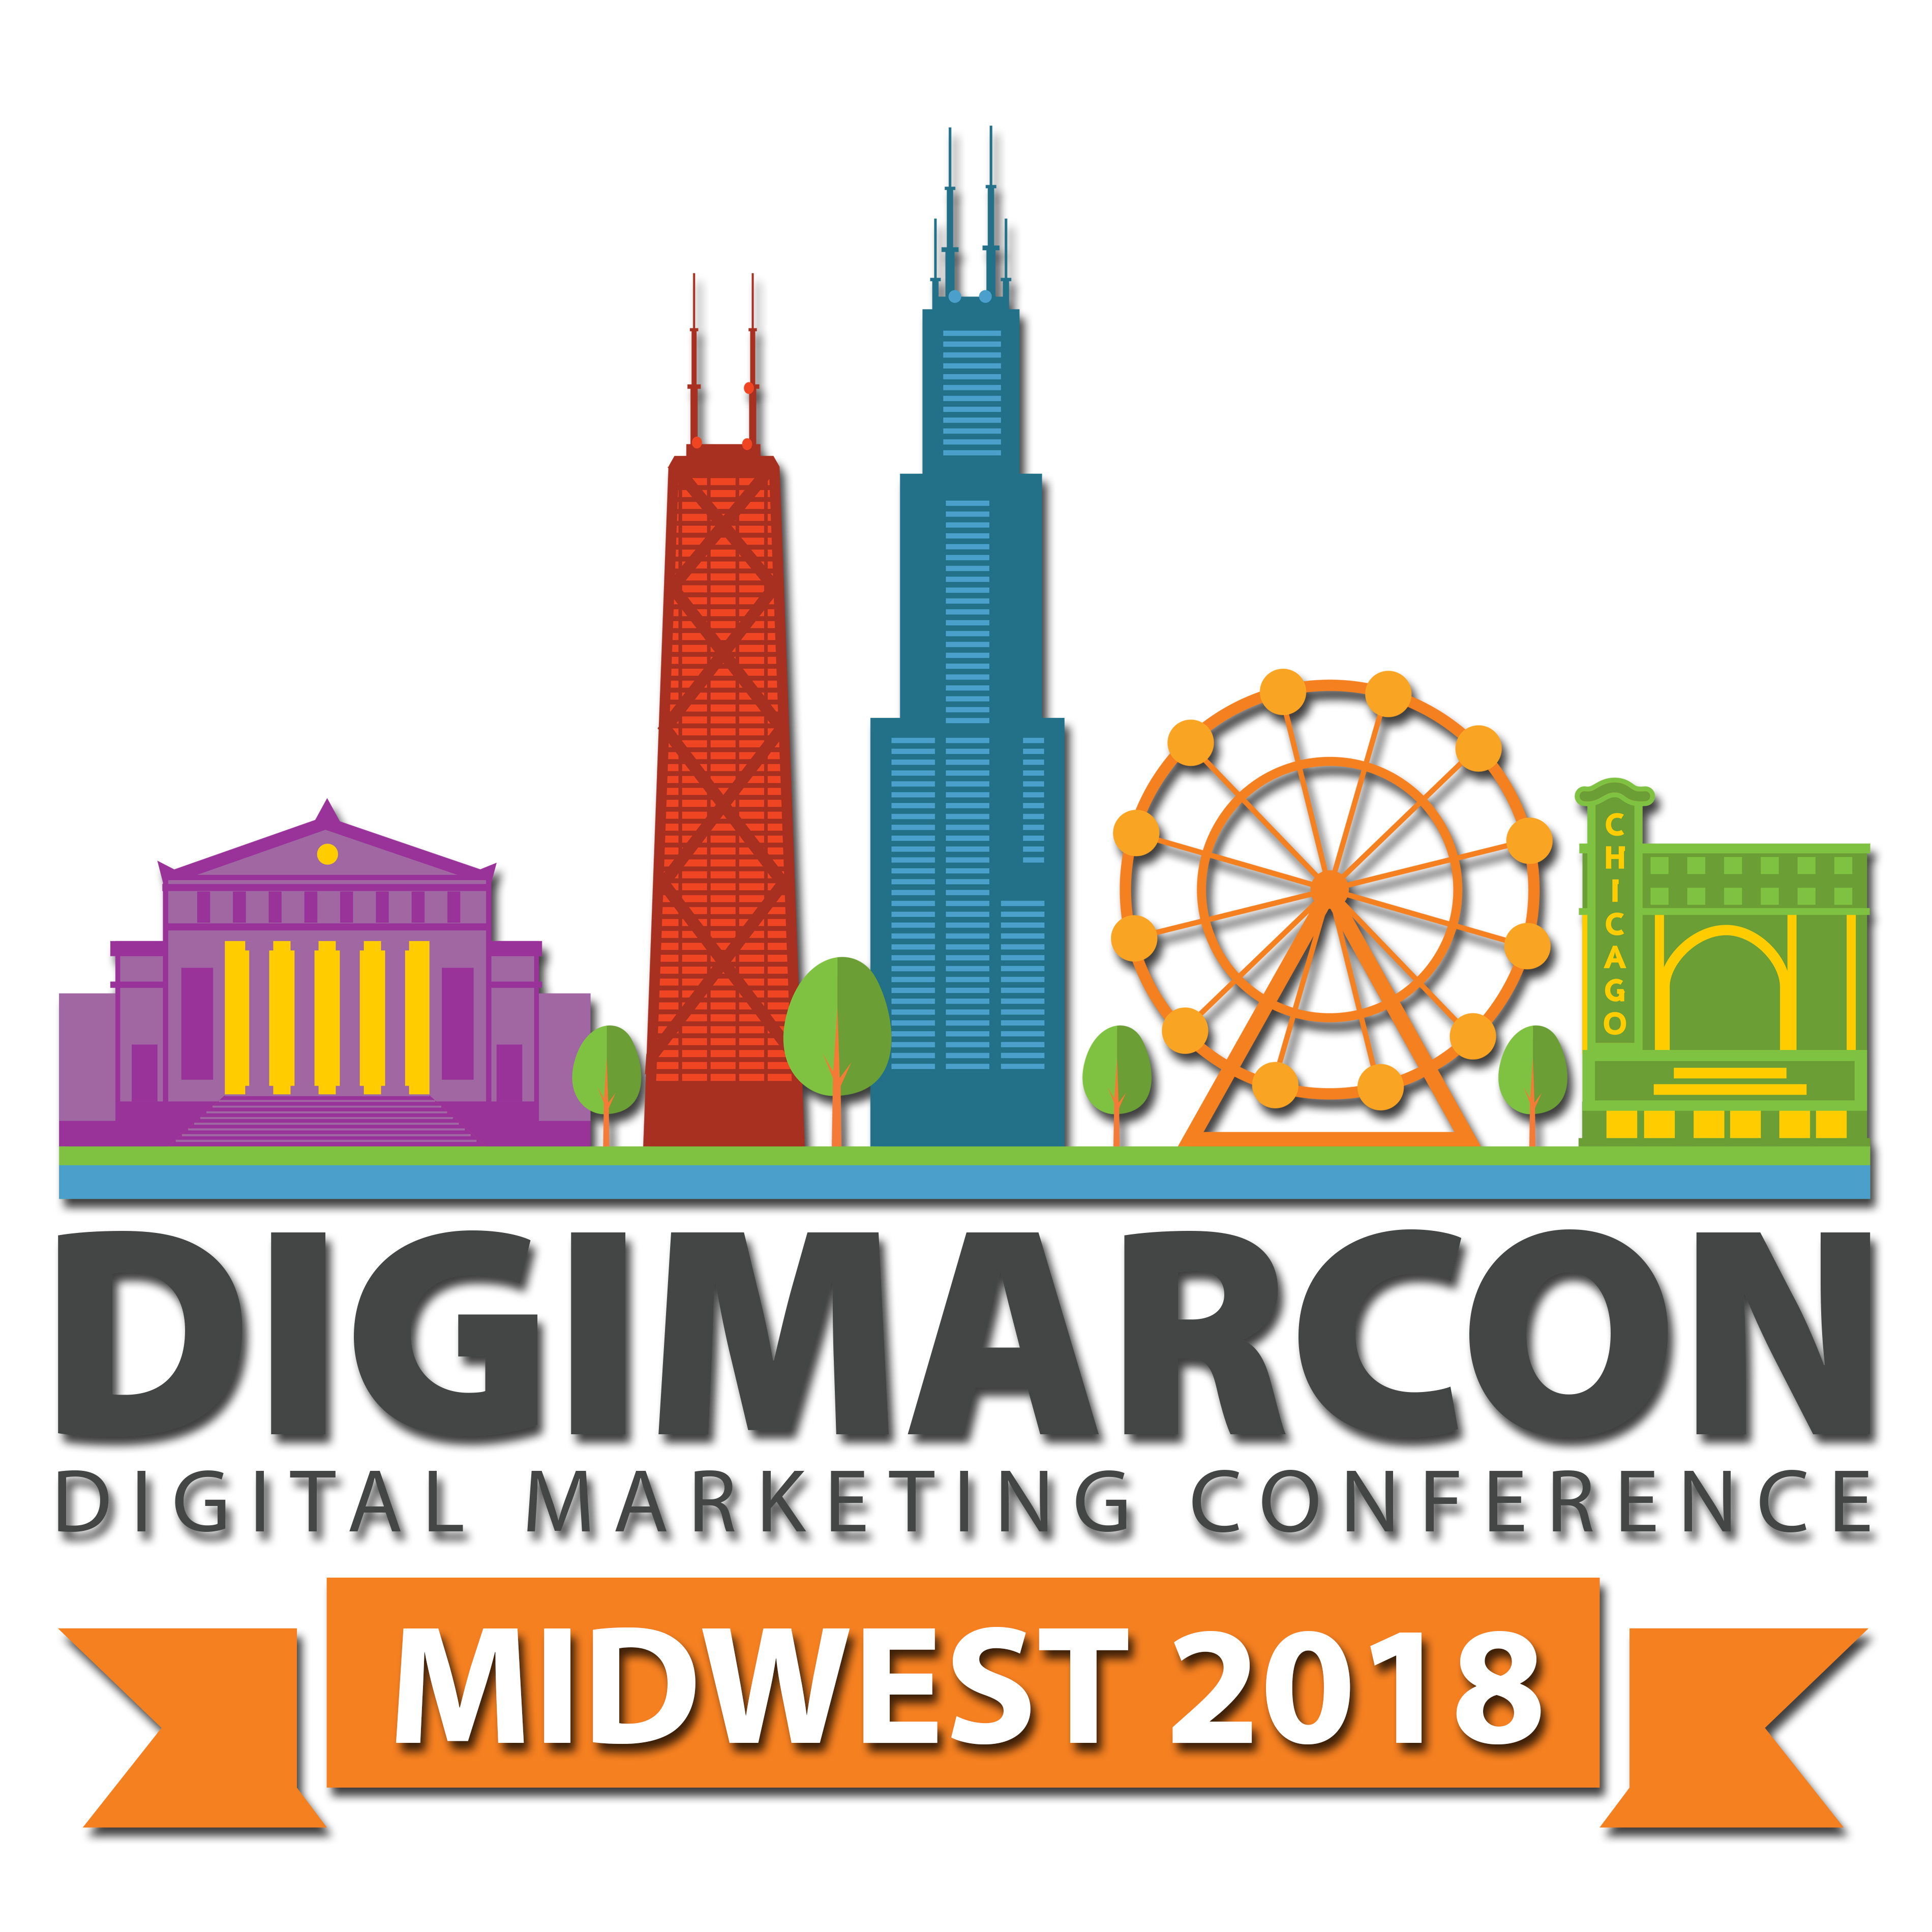 DigiMarCon Chicago 2018 - Digital Marketing Conference